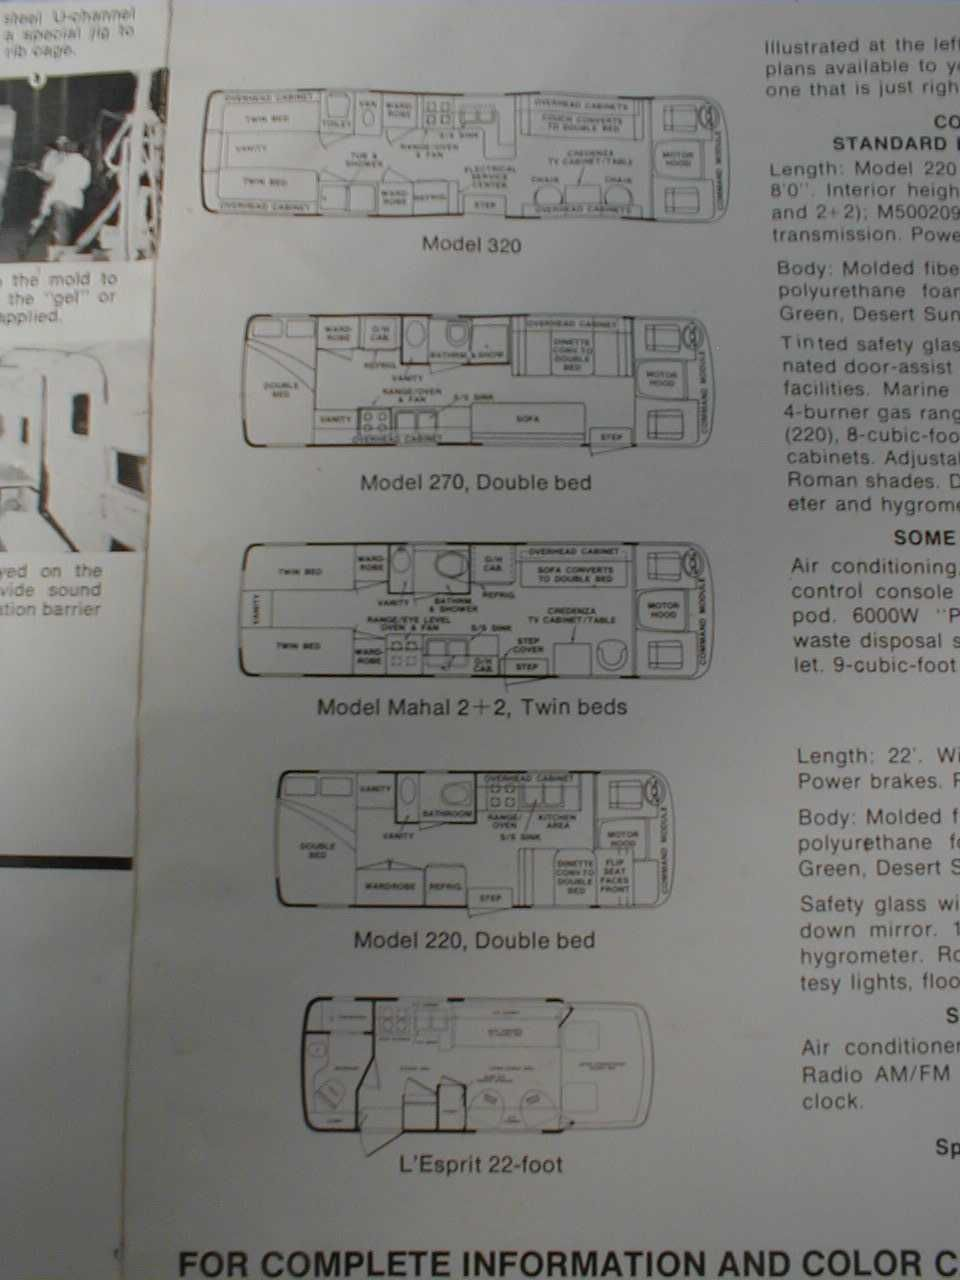 Floor plans Our RV has the Mahal 22 floor plan